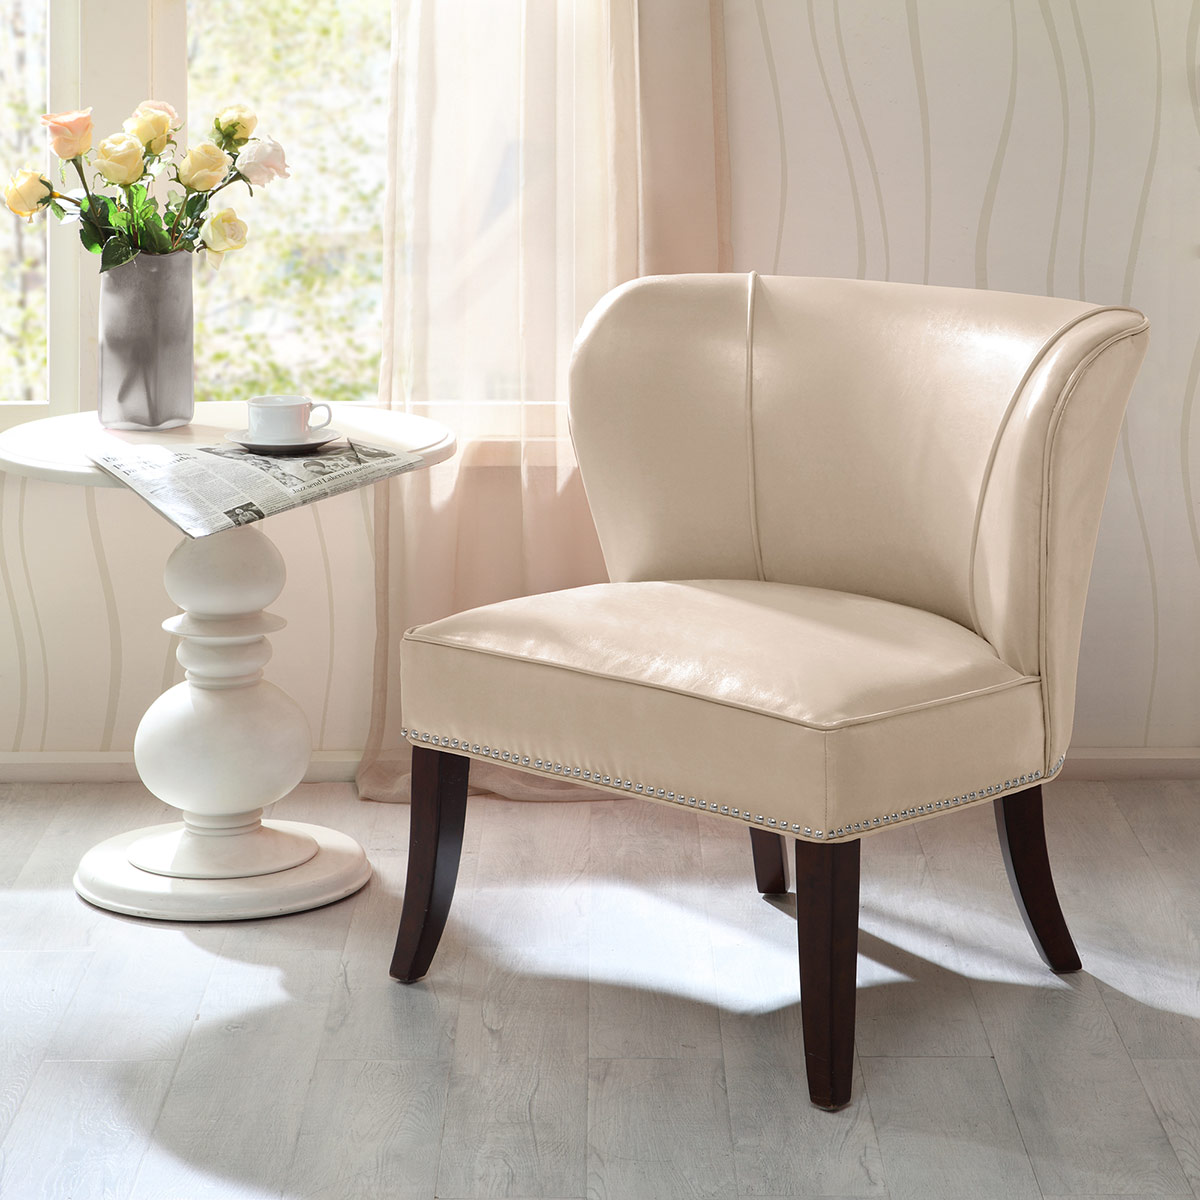 Dallas Faux Leather Accent Chair - Bone